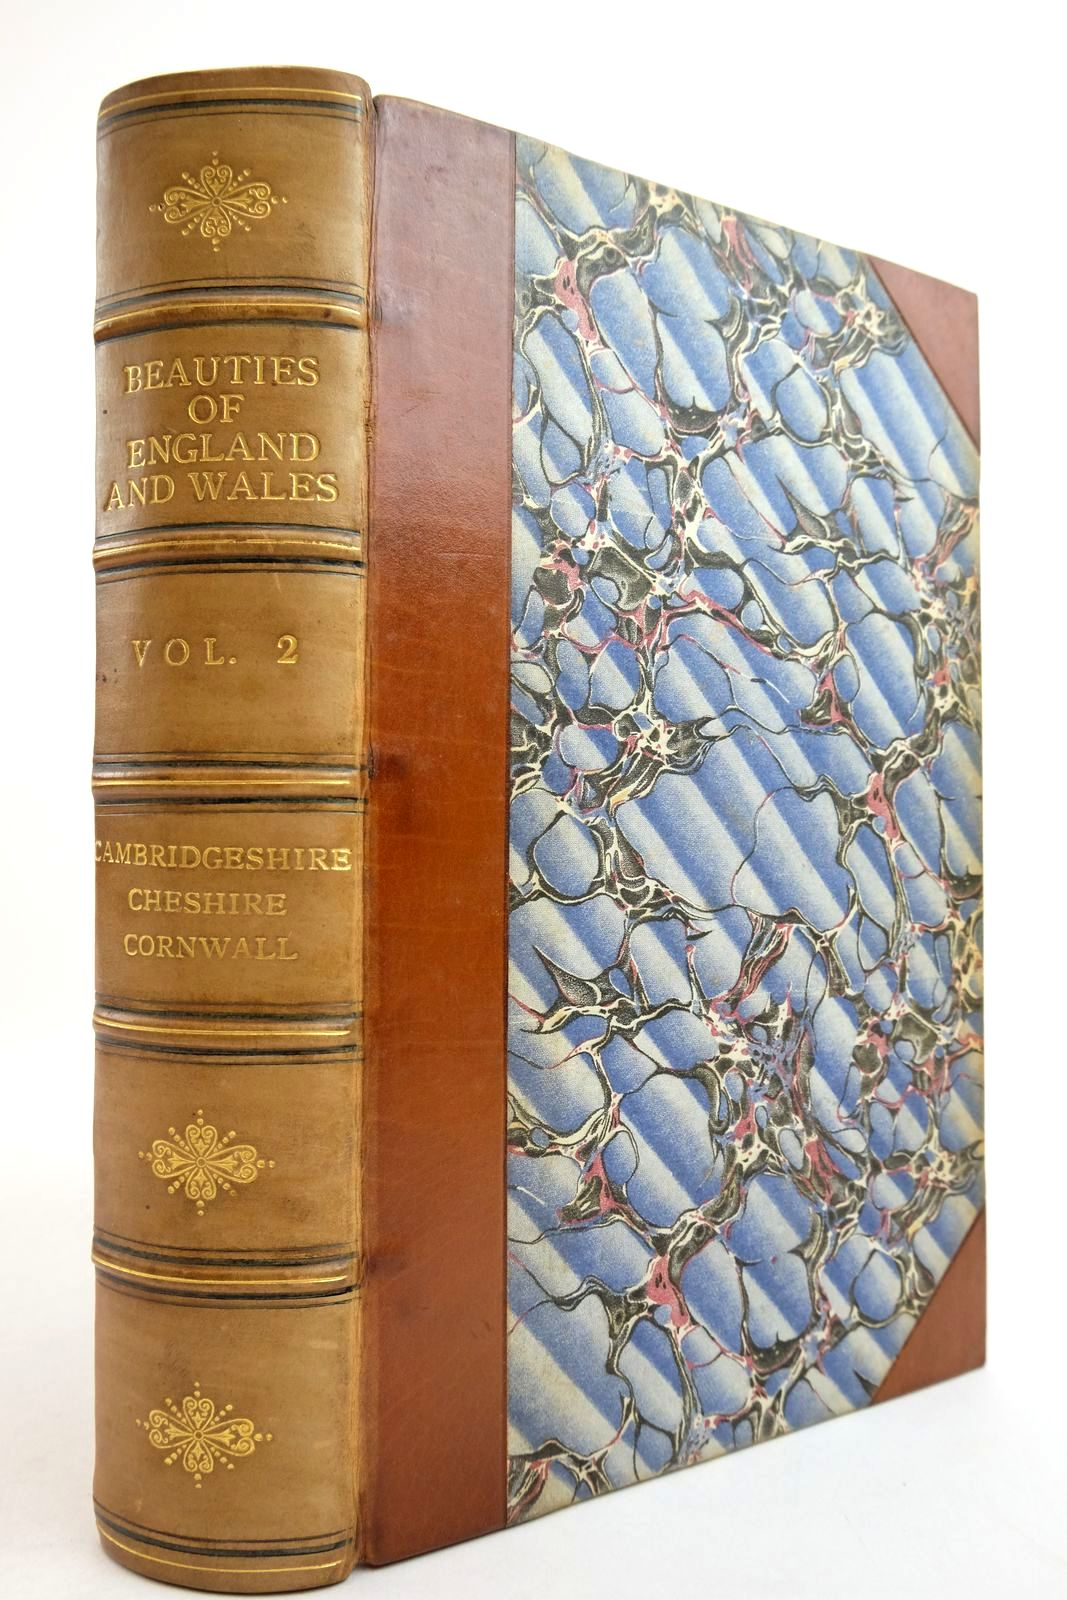 Photo of THE BEAUTIES OF ENGLAND AND WALES VOL II- Stock Number: 2134495